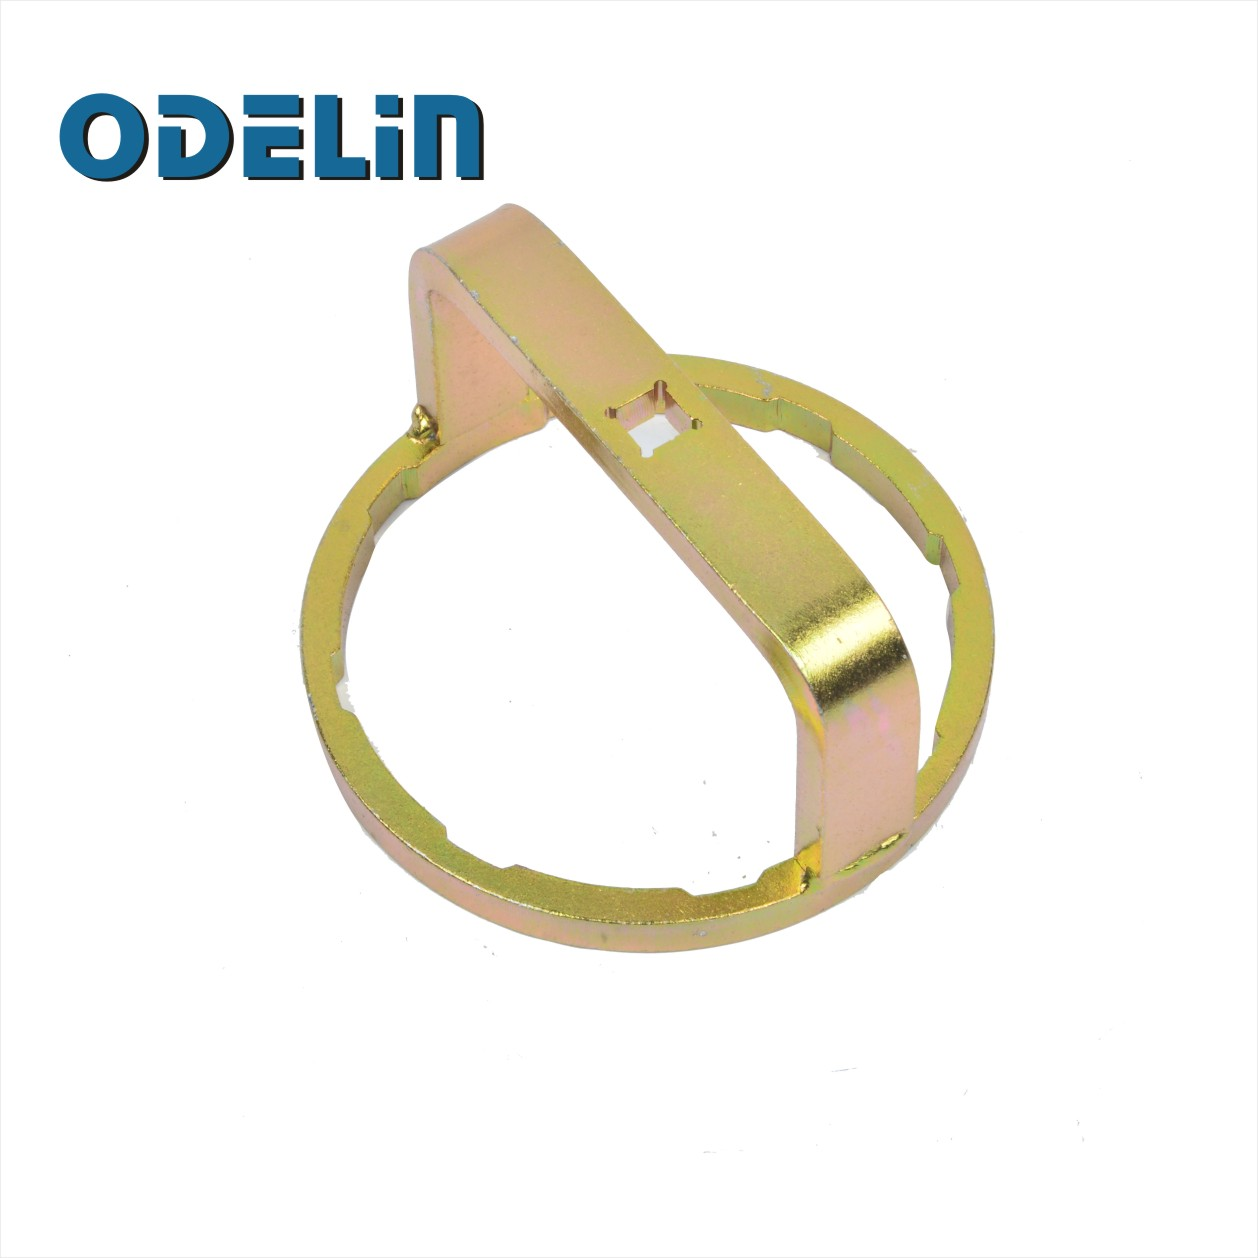 medium resolution of 109mm 8 flute fuel filter wrench removal tool for peugeot citroen renault